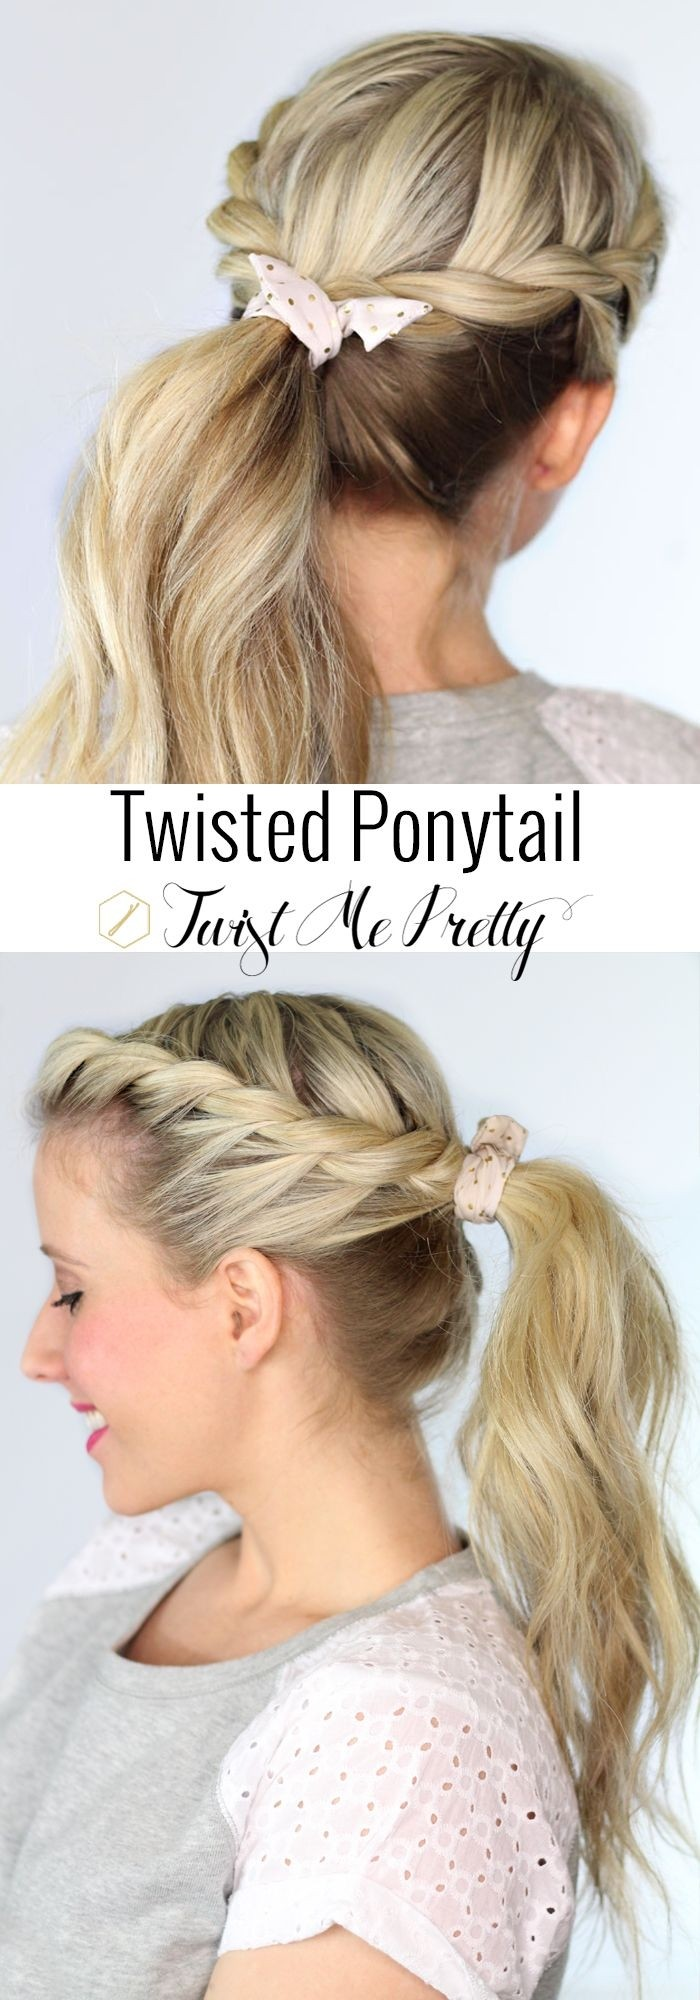 Twisted ponytail hairstyle for spring